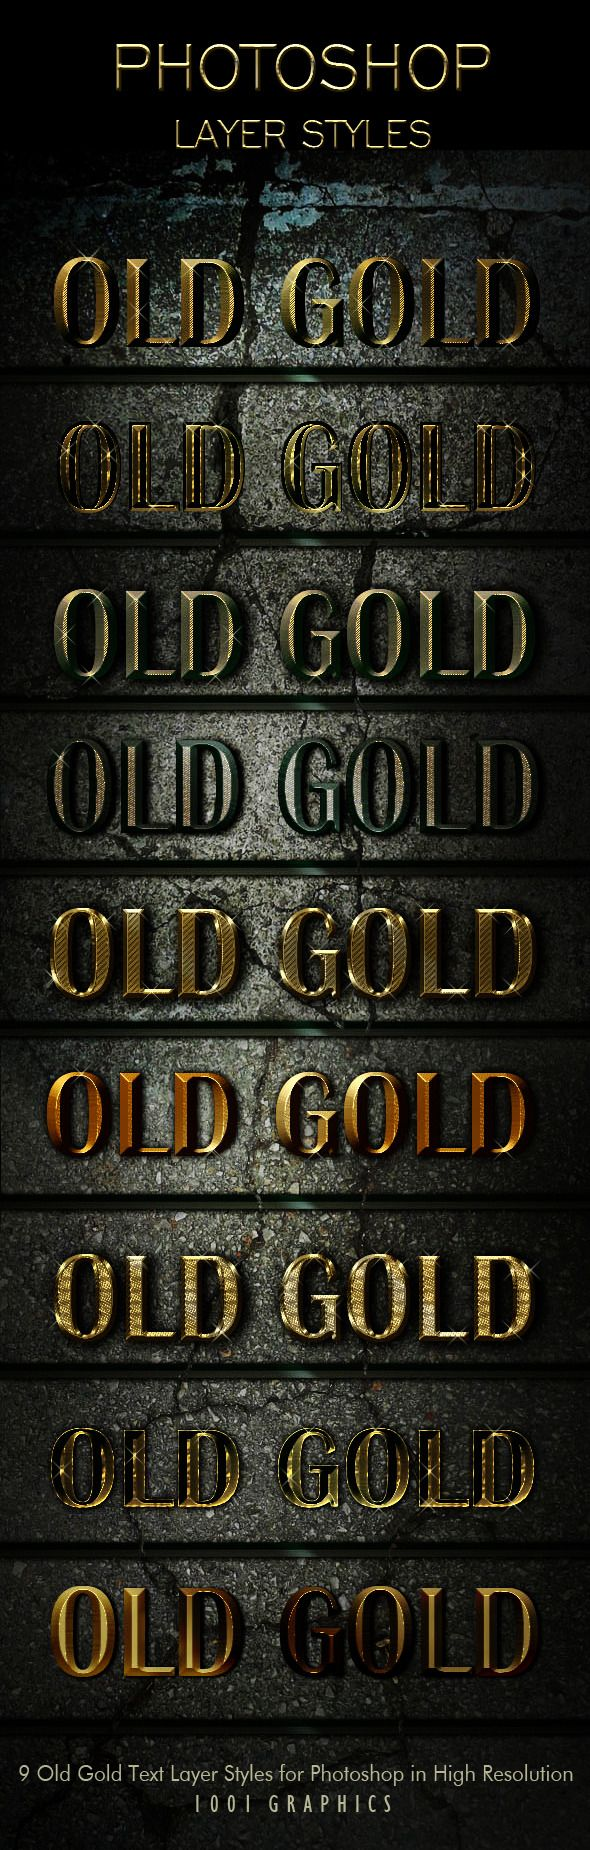 9 Old Gold Text Effects Styles ASL